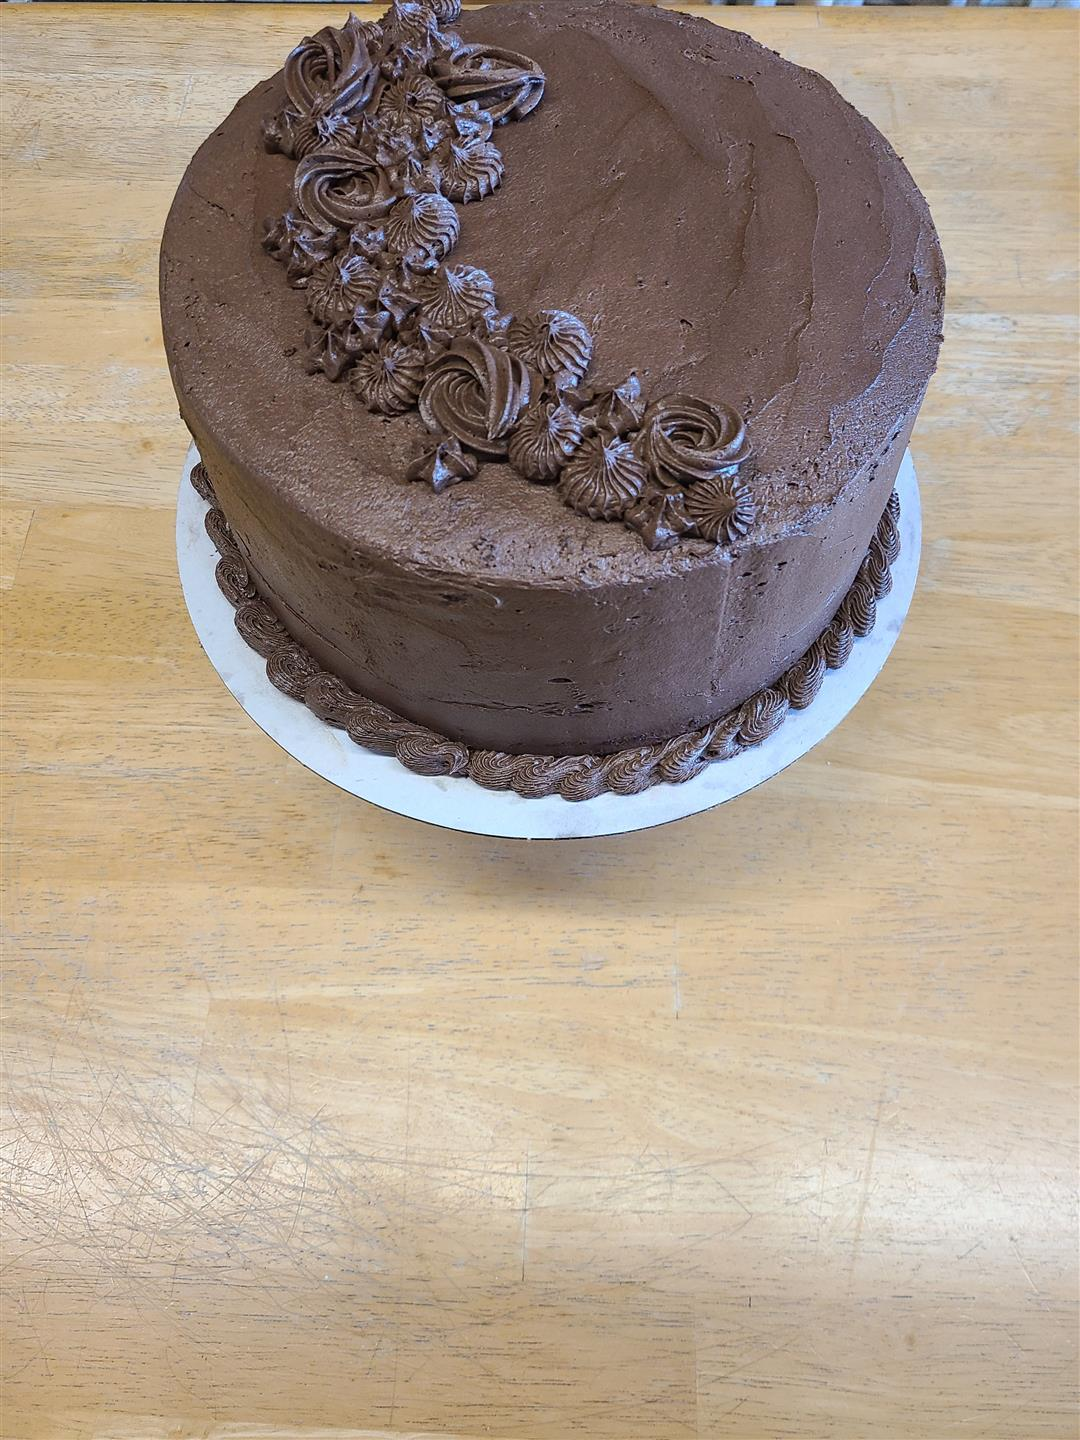 Chocolate frosted cake with piped design on top